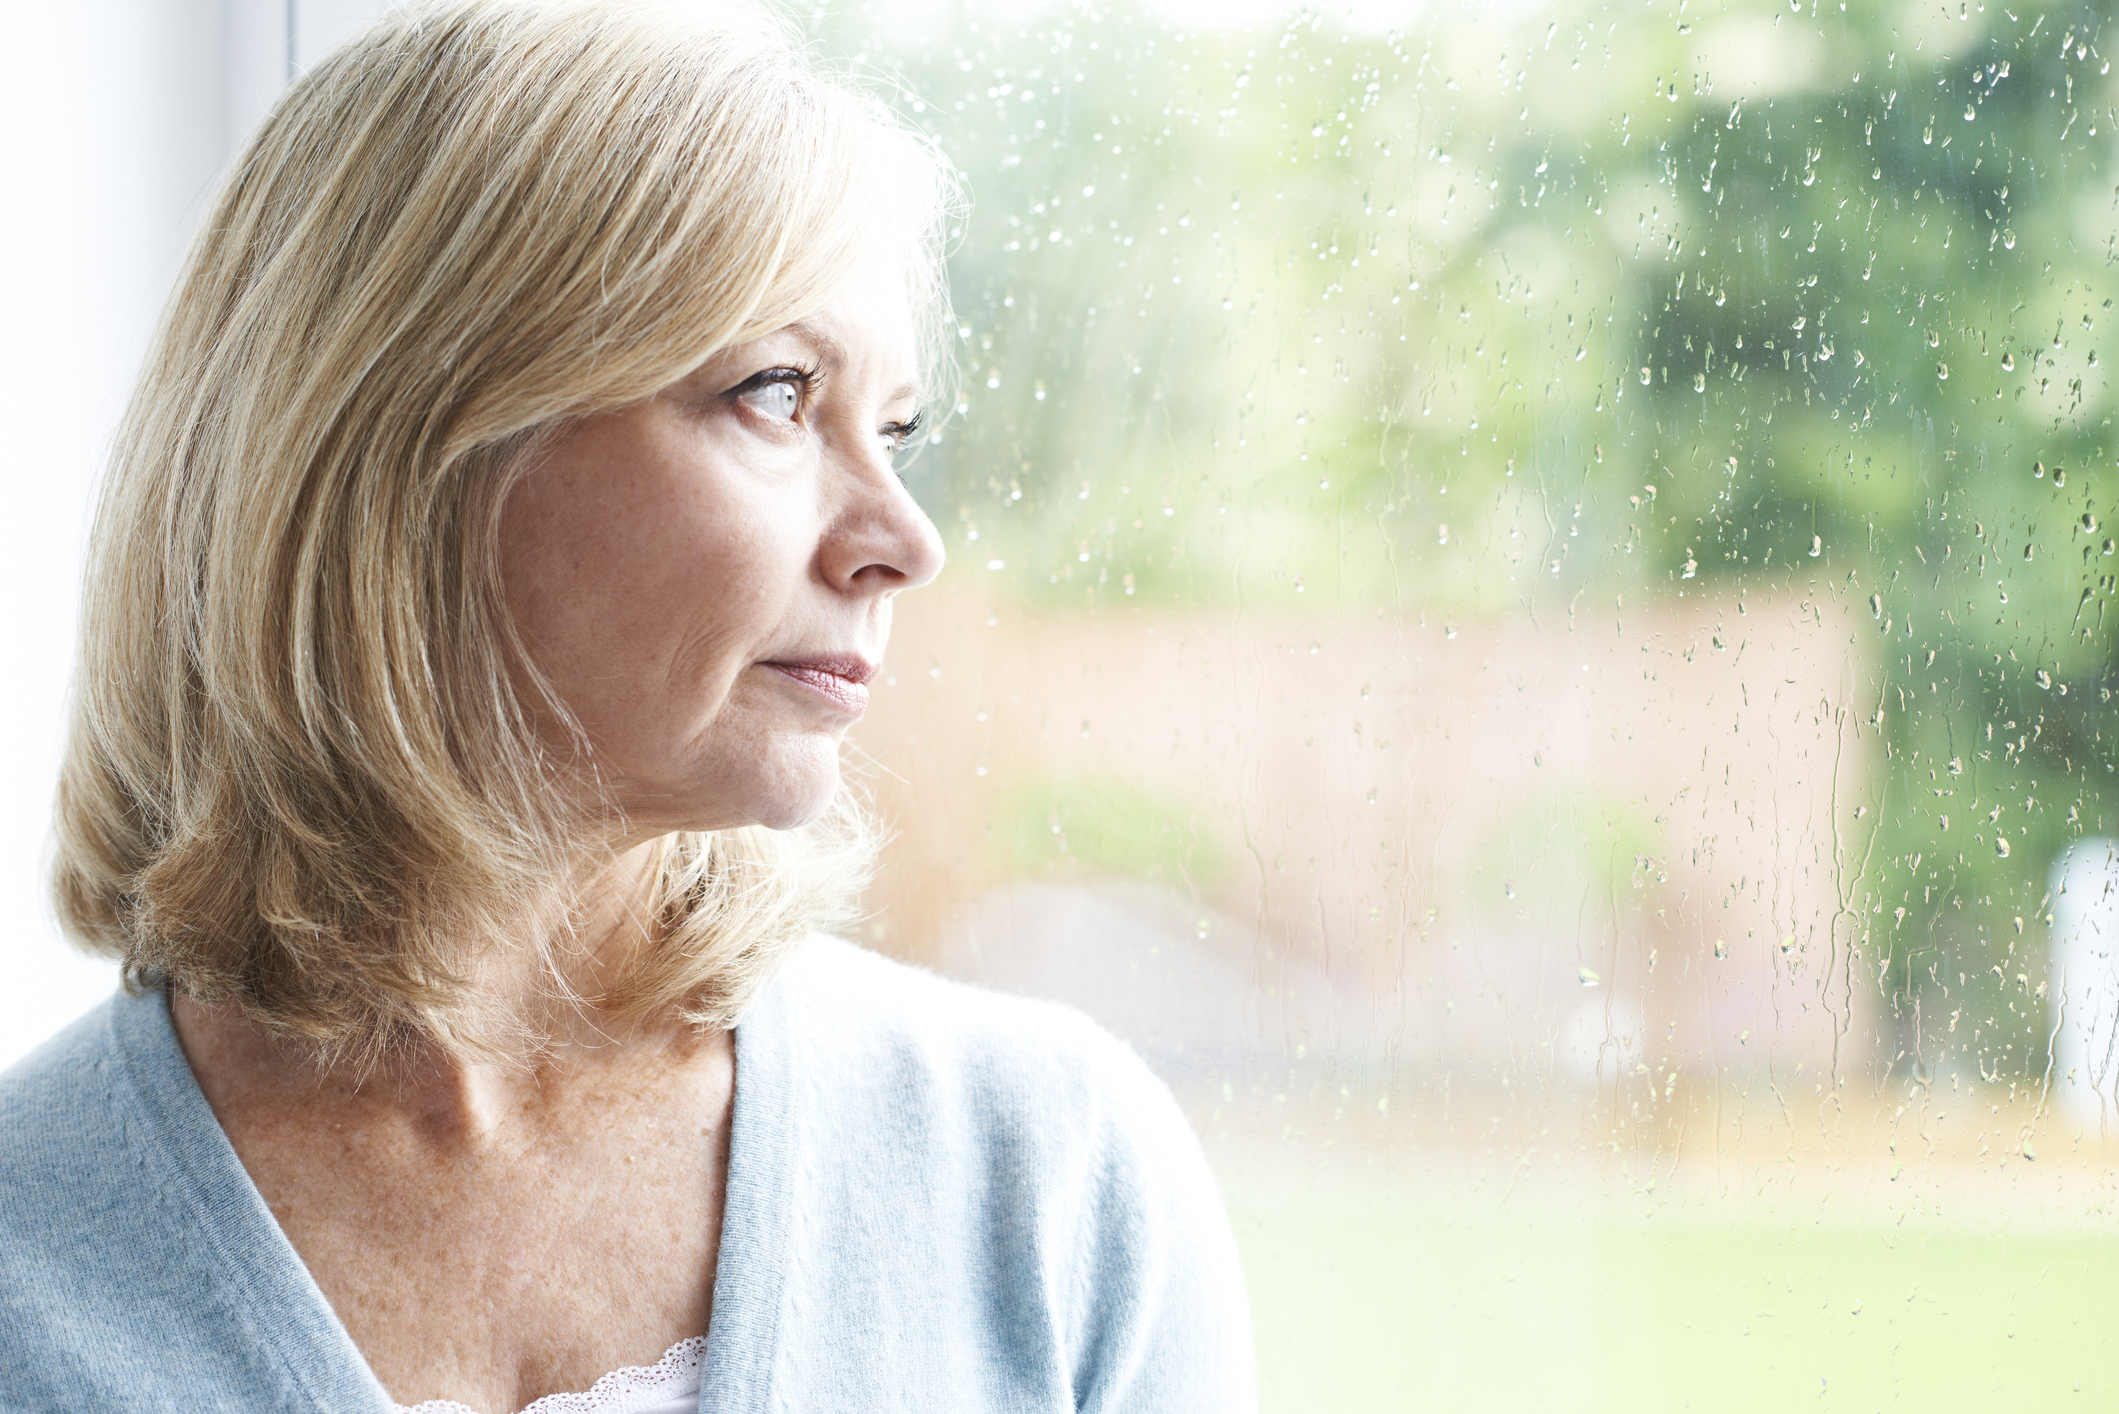 Is your immune system causing your depression?